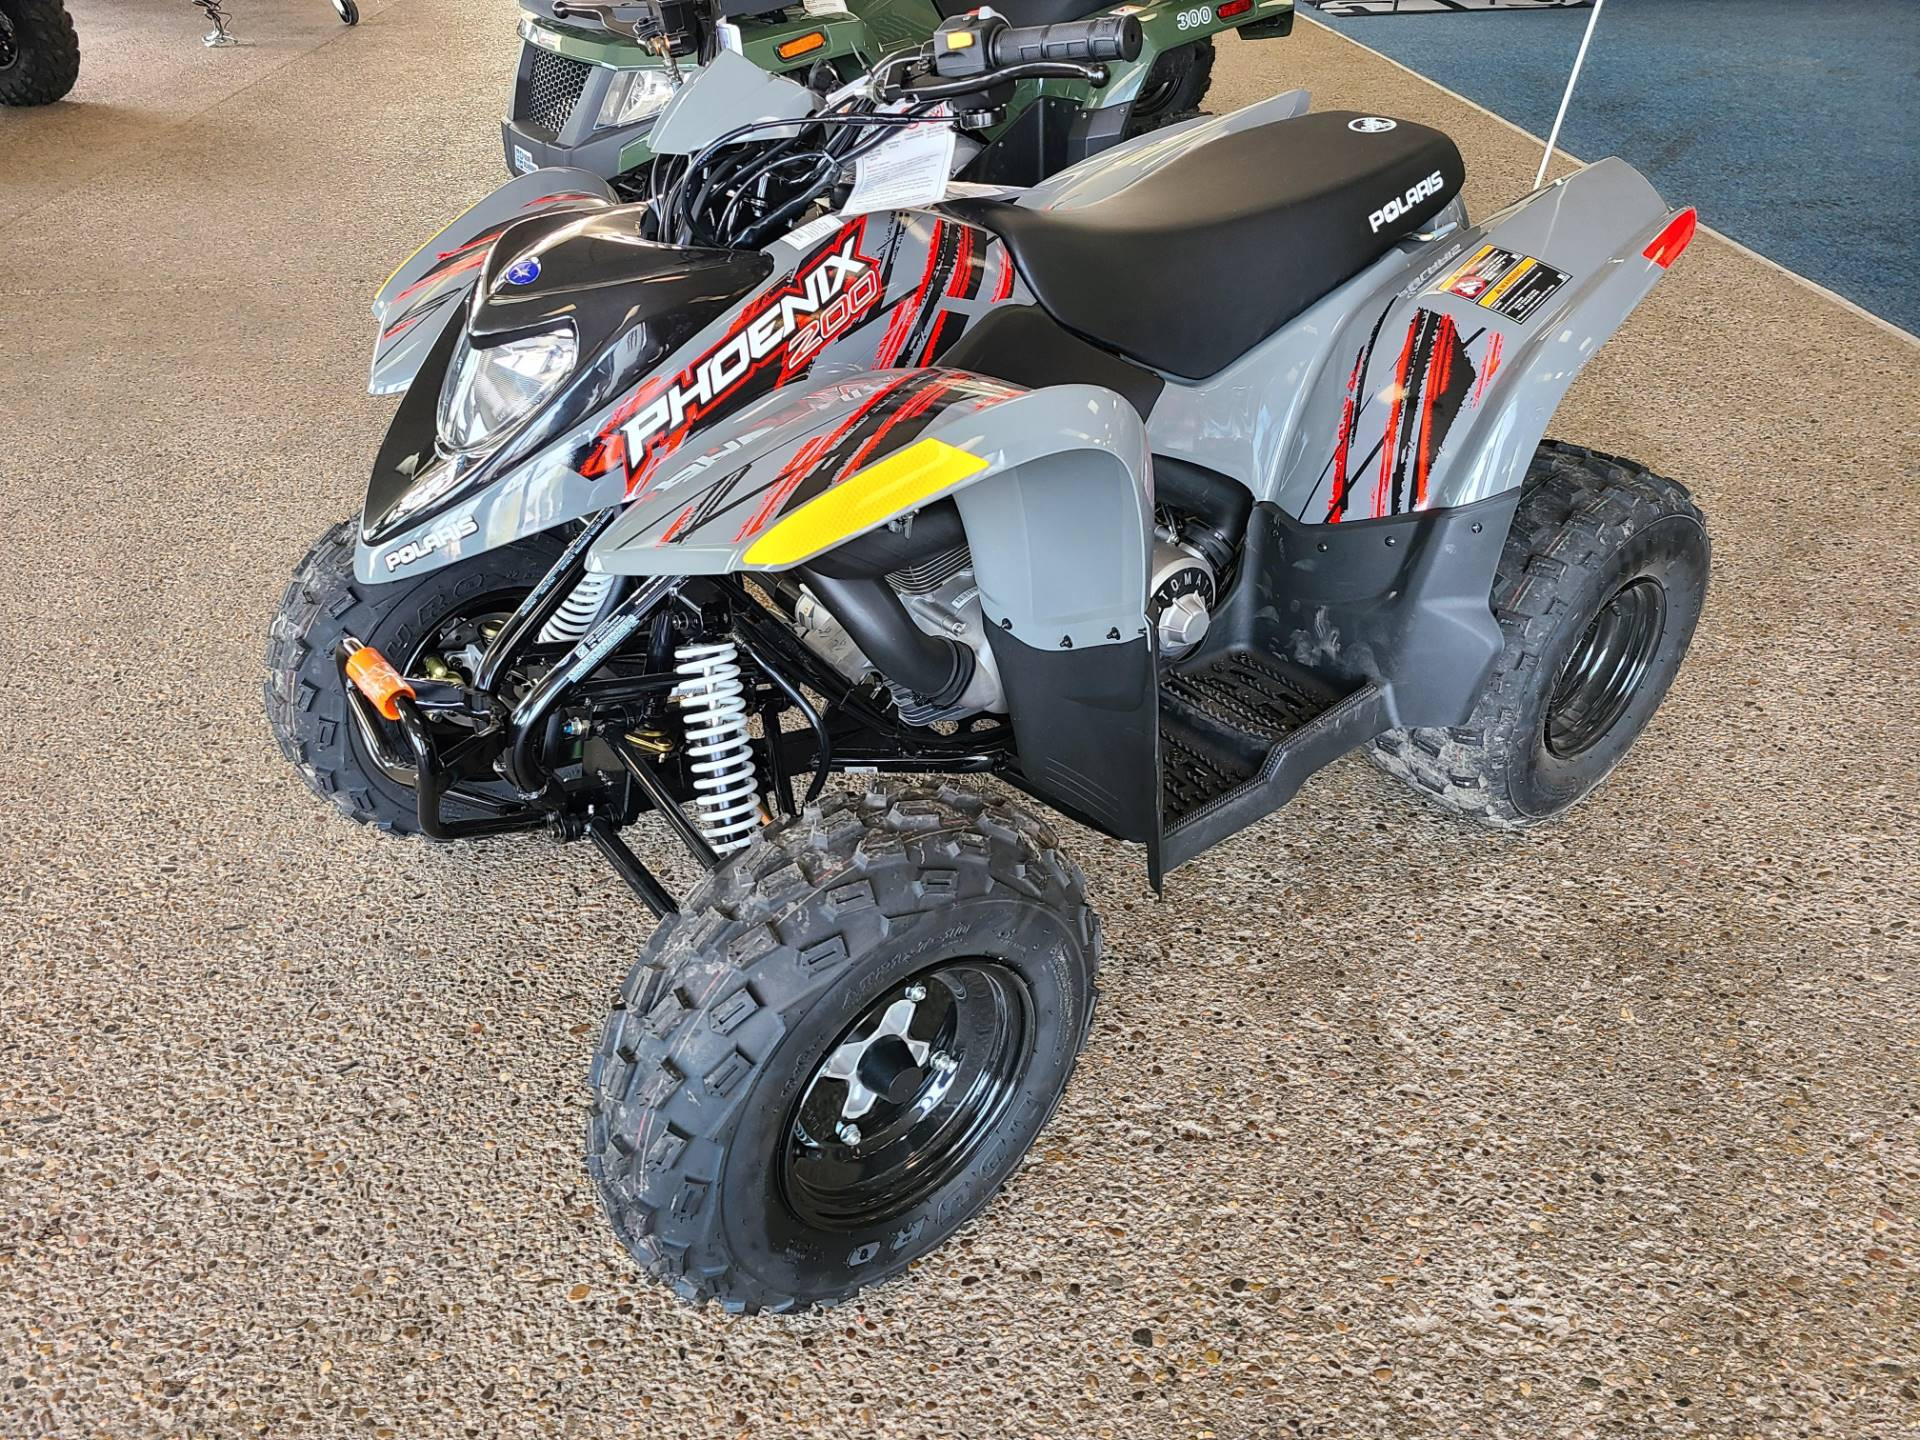 2020 Polaris Phoenix 200 in Rapid City, South Dakota - Photo 2